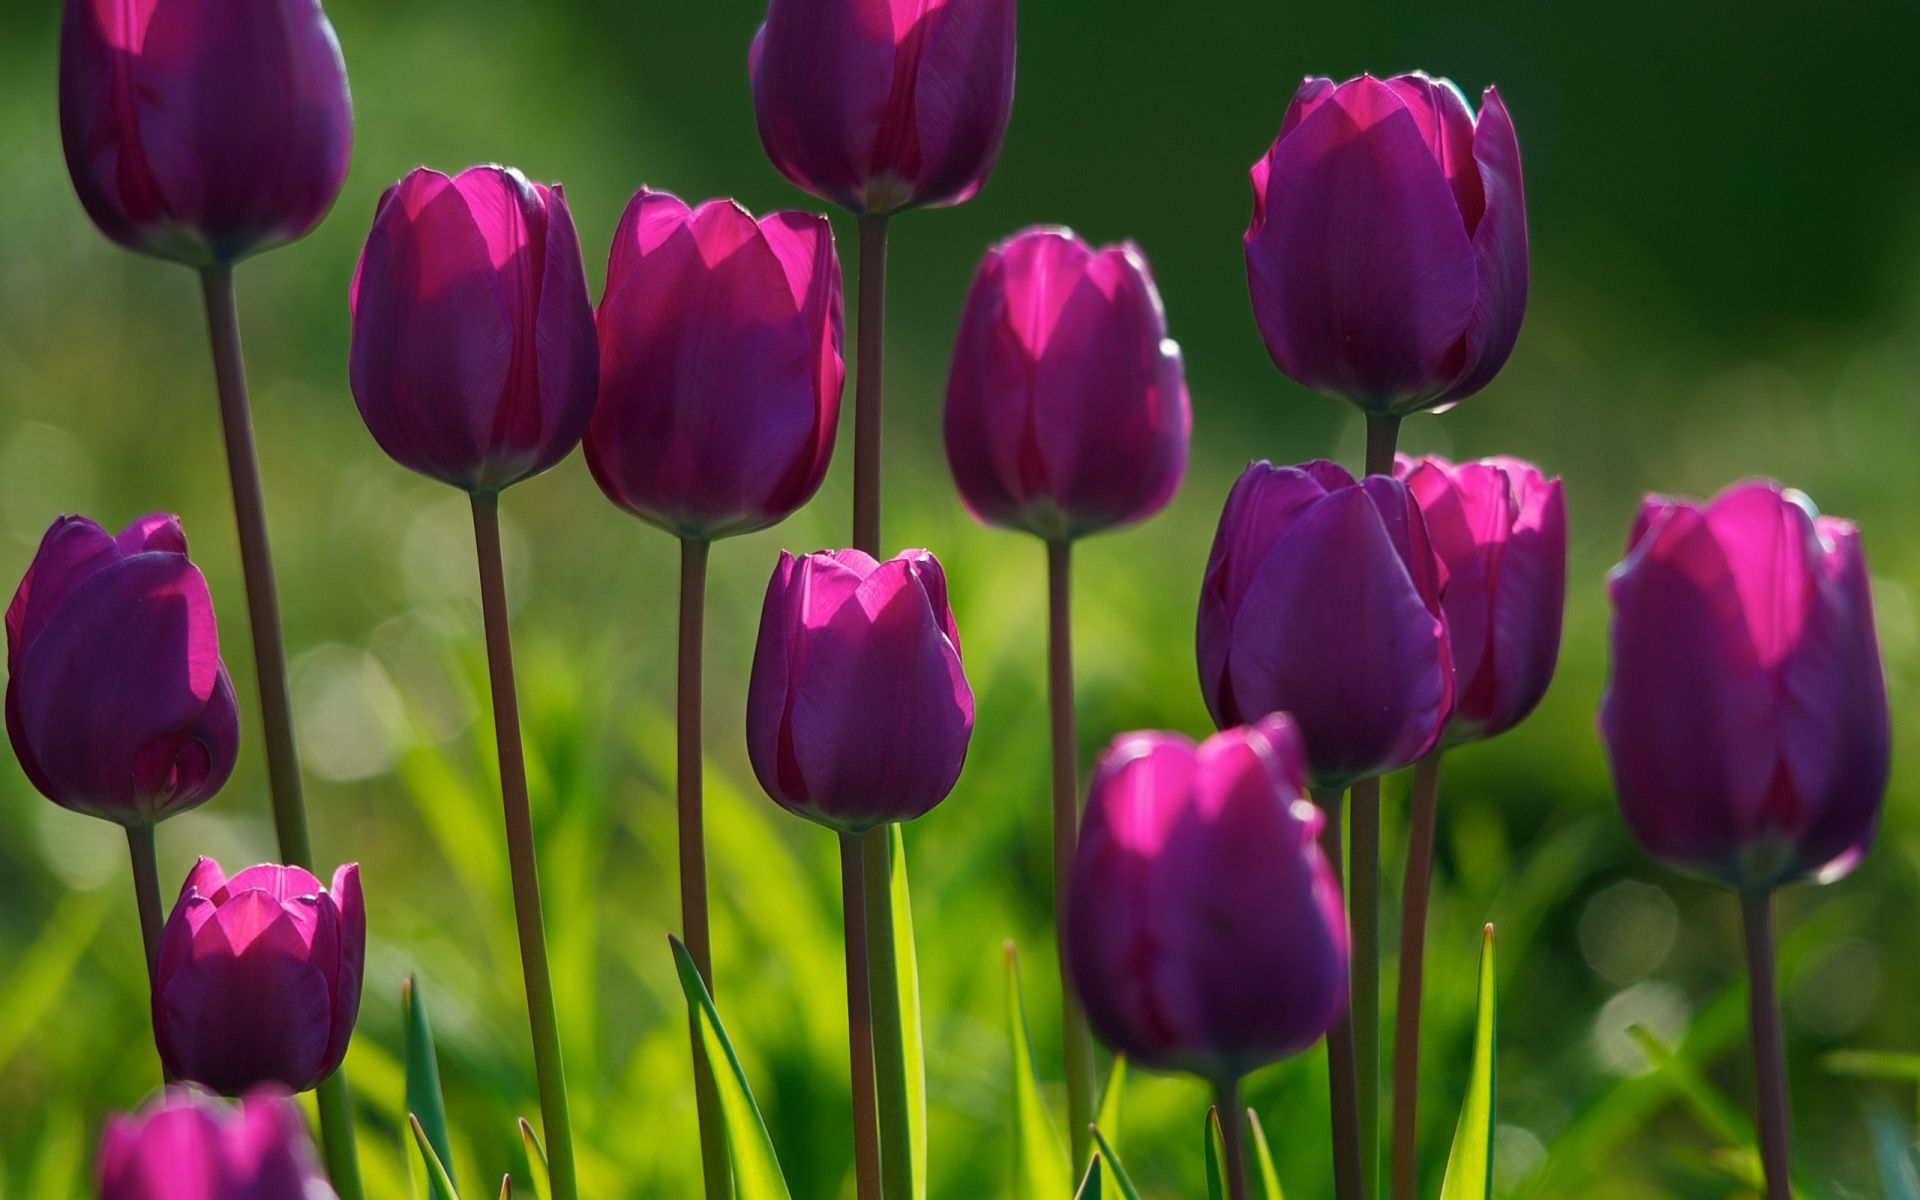 Purple Tulips Wallpapers Top Free Purple Tulips Backgrounds Wallpaperaccess